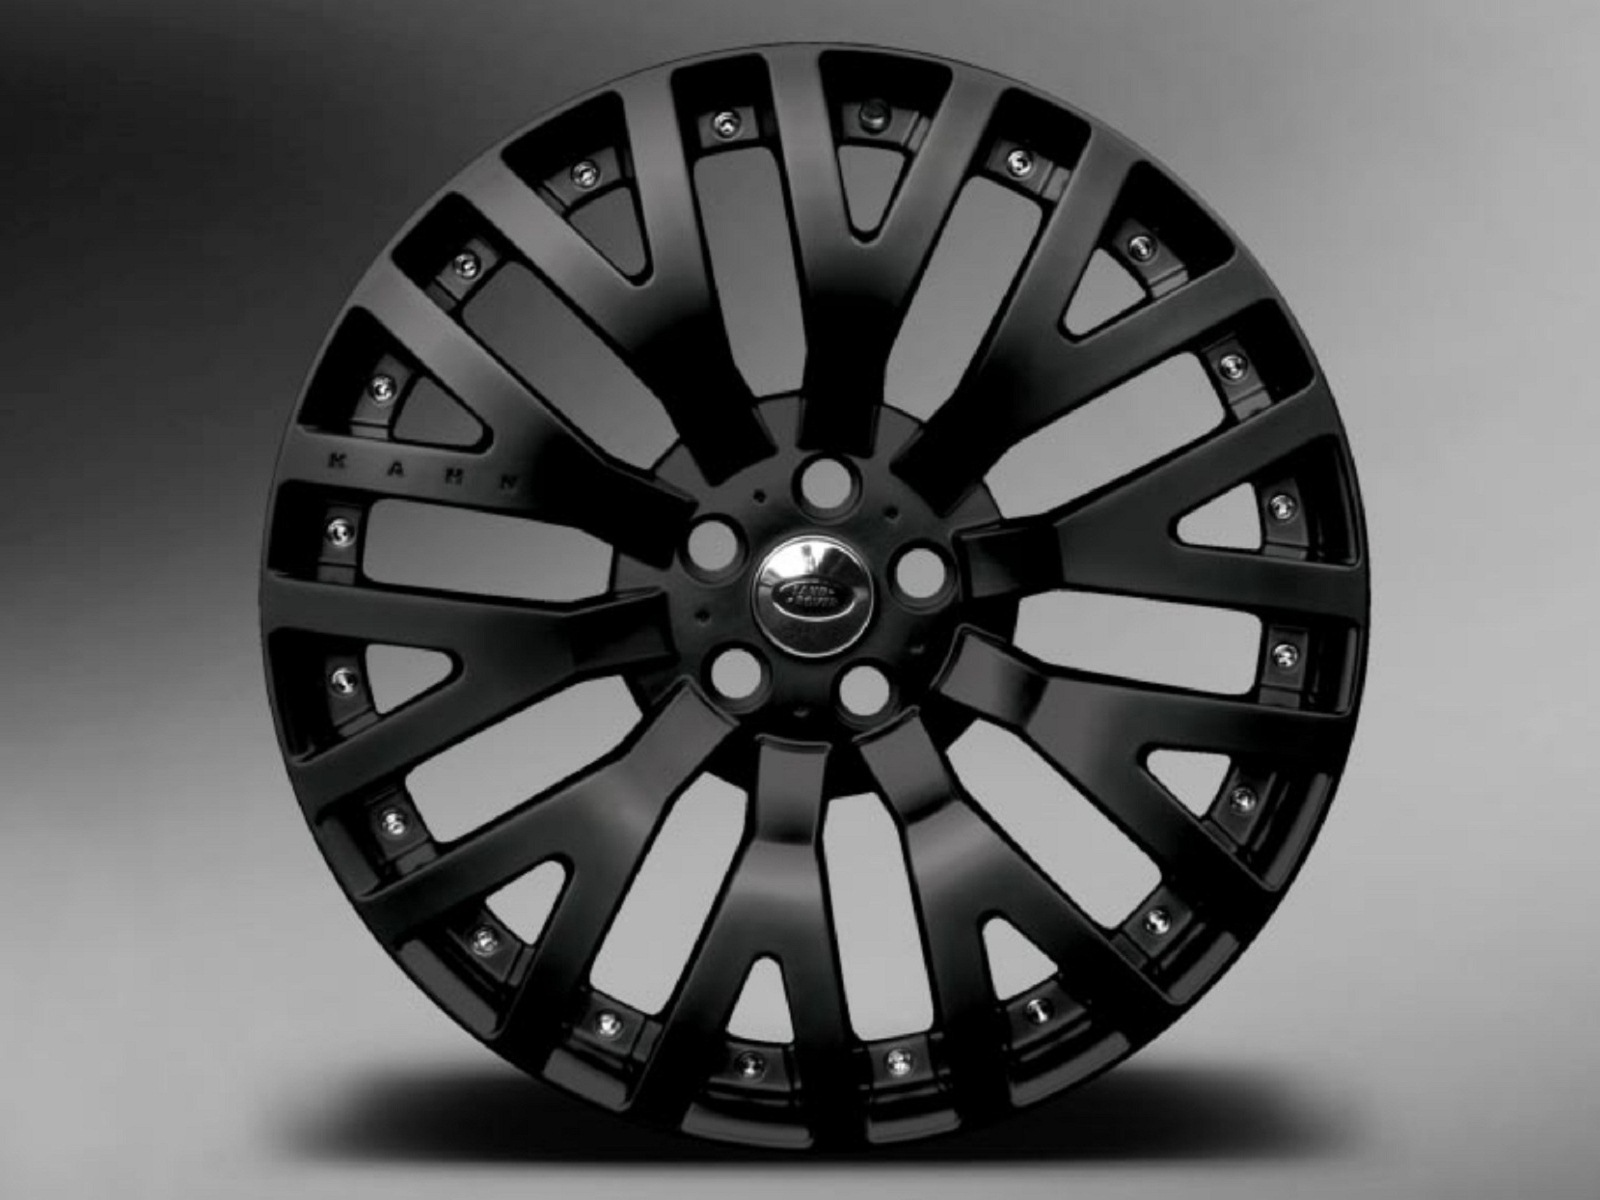 Land Rover Range Rover wheels #4